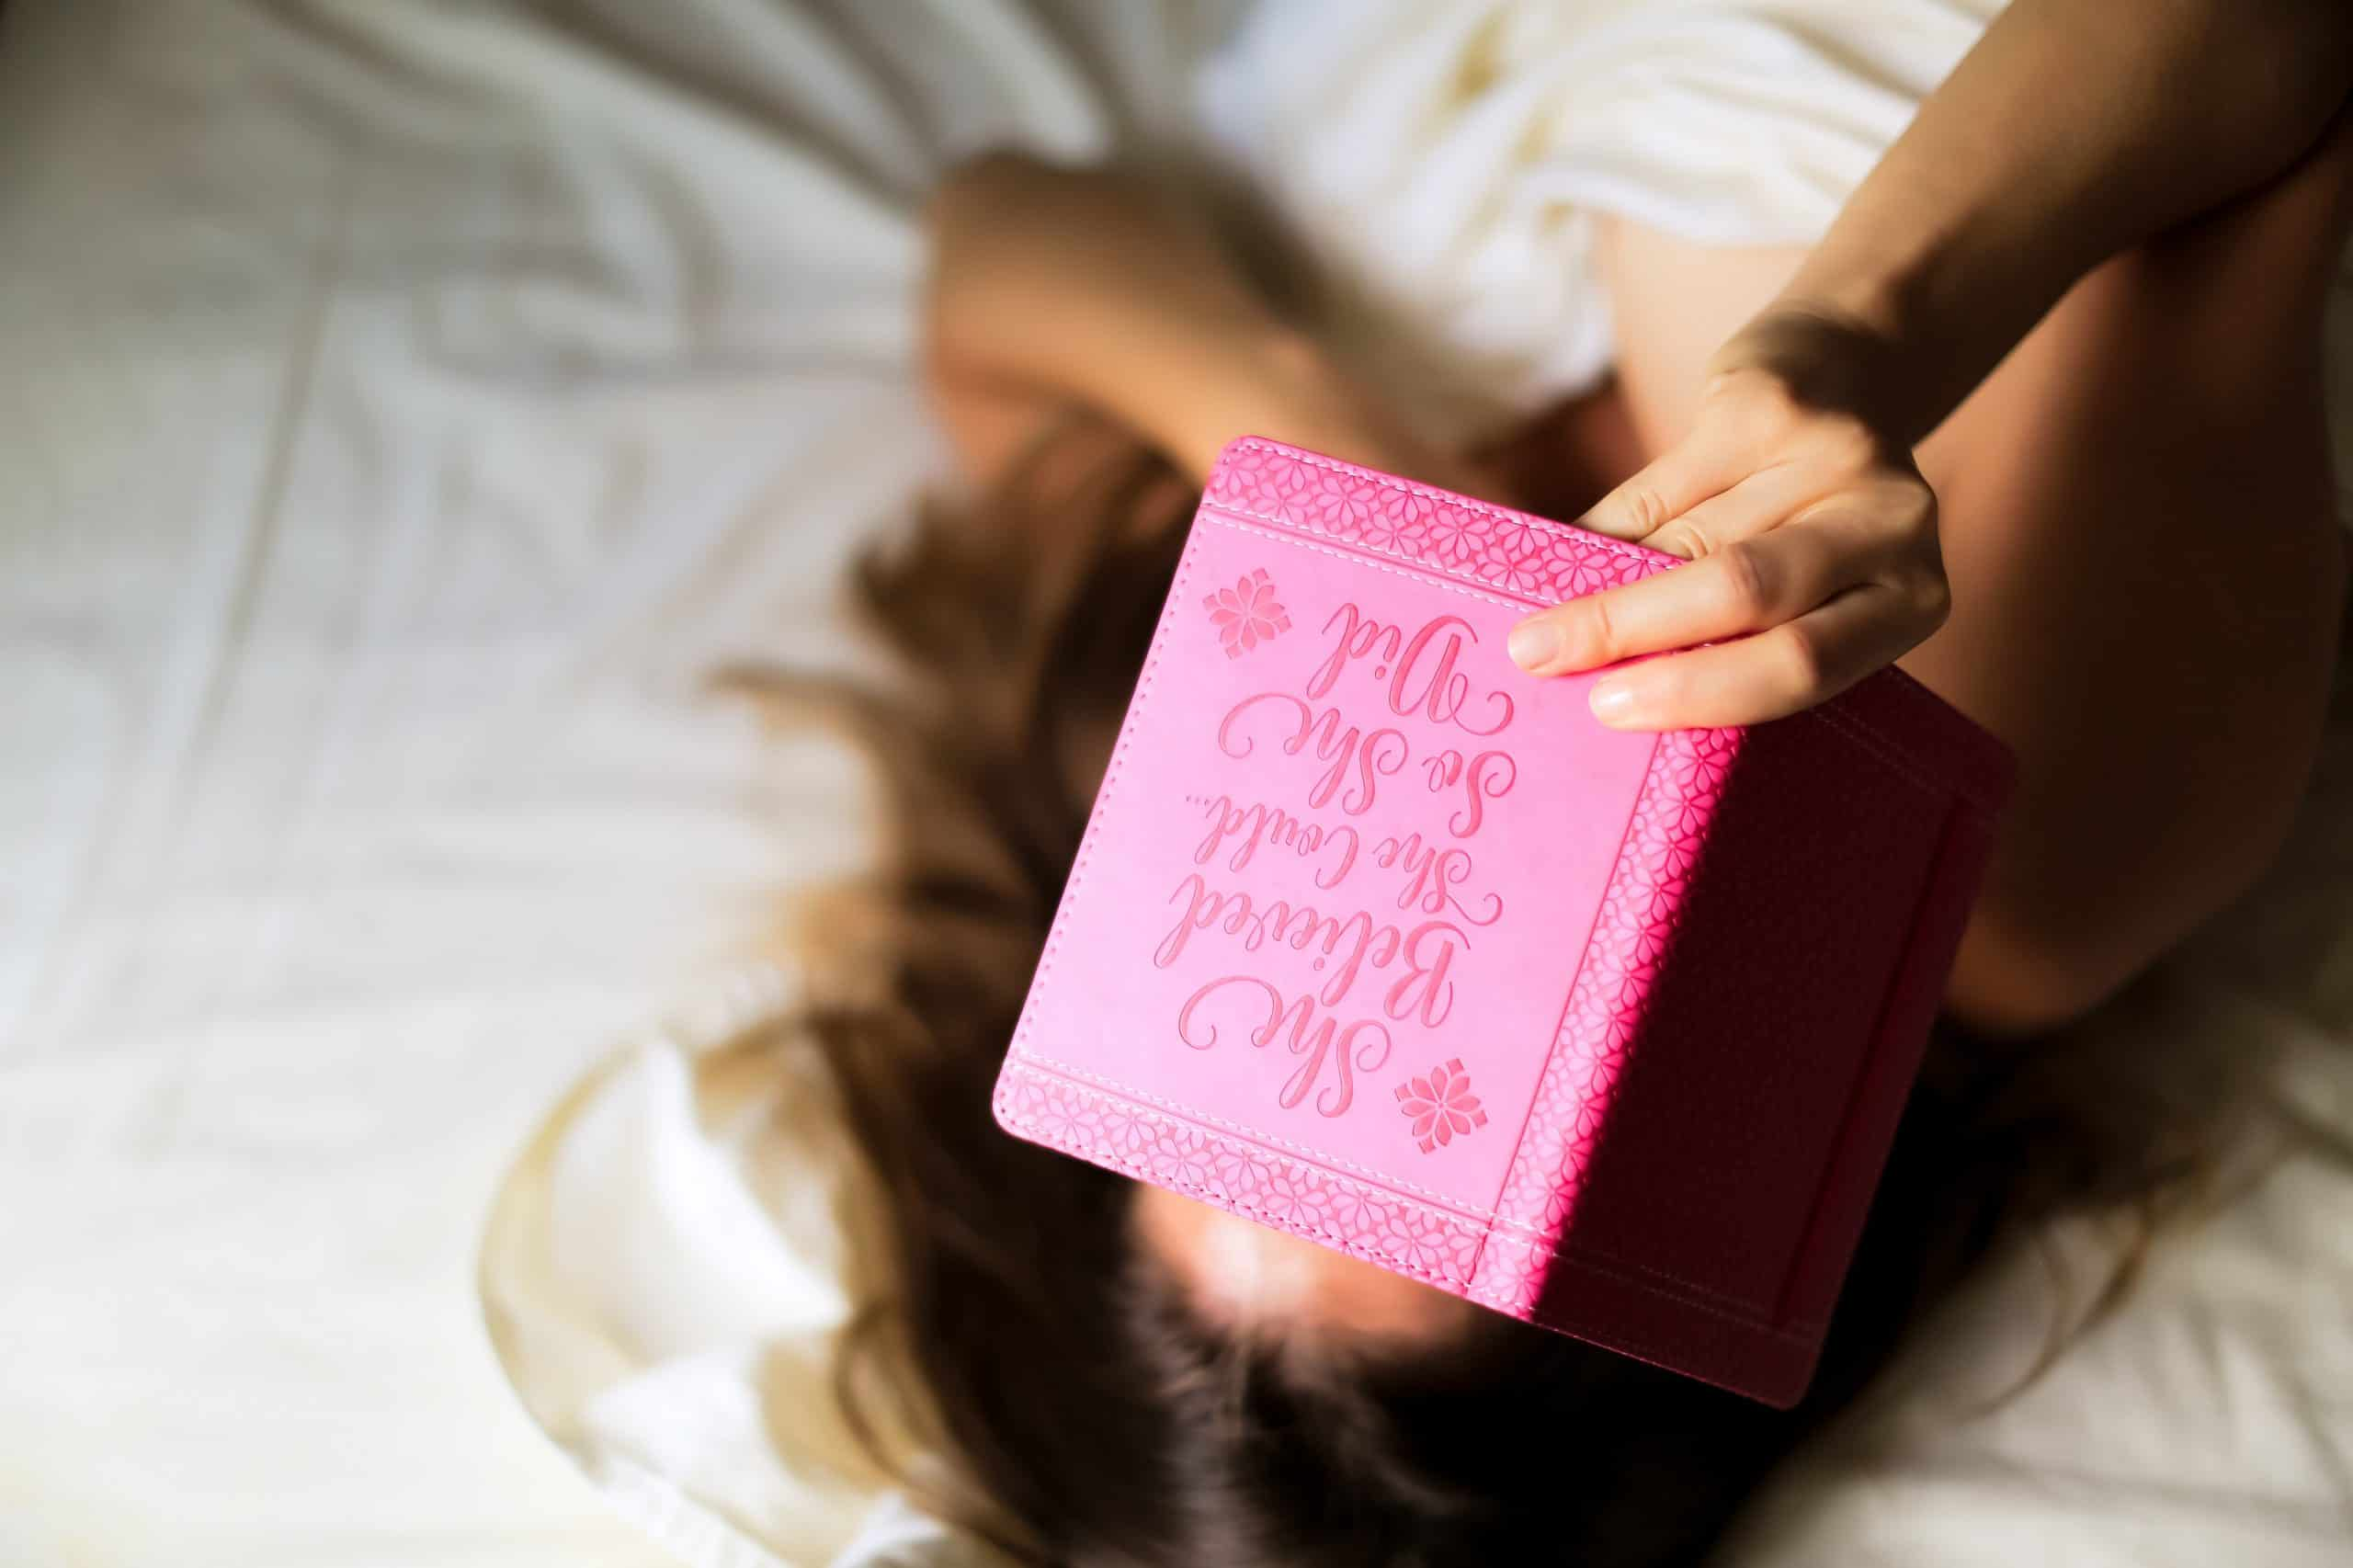 Journaling to find your best self